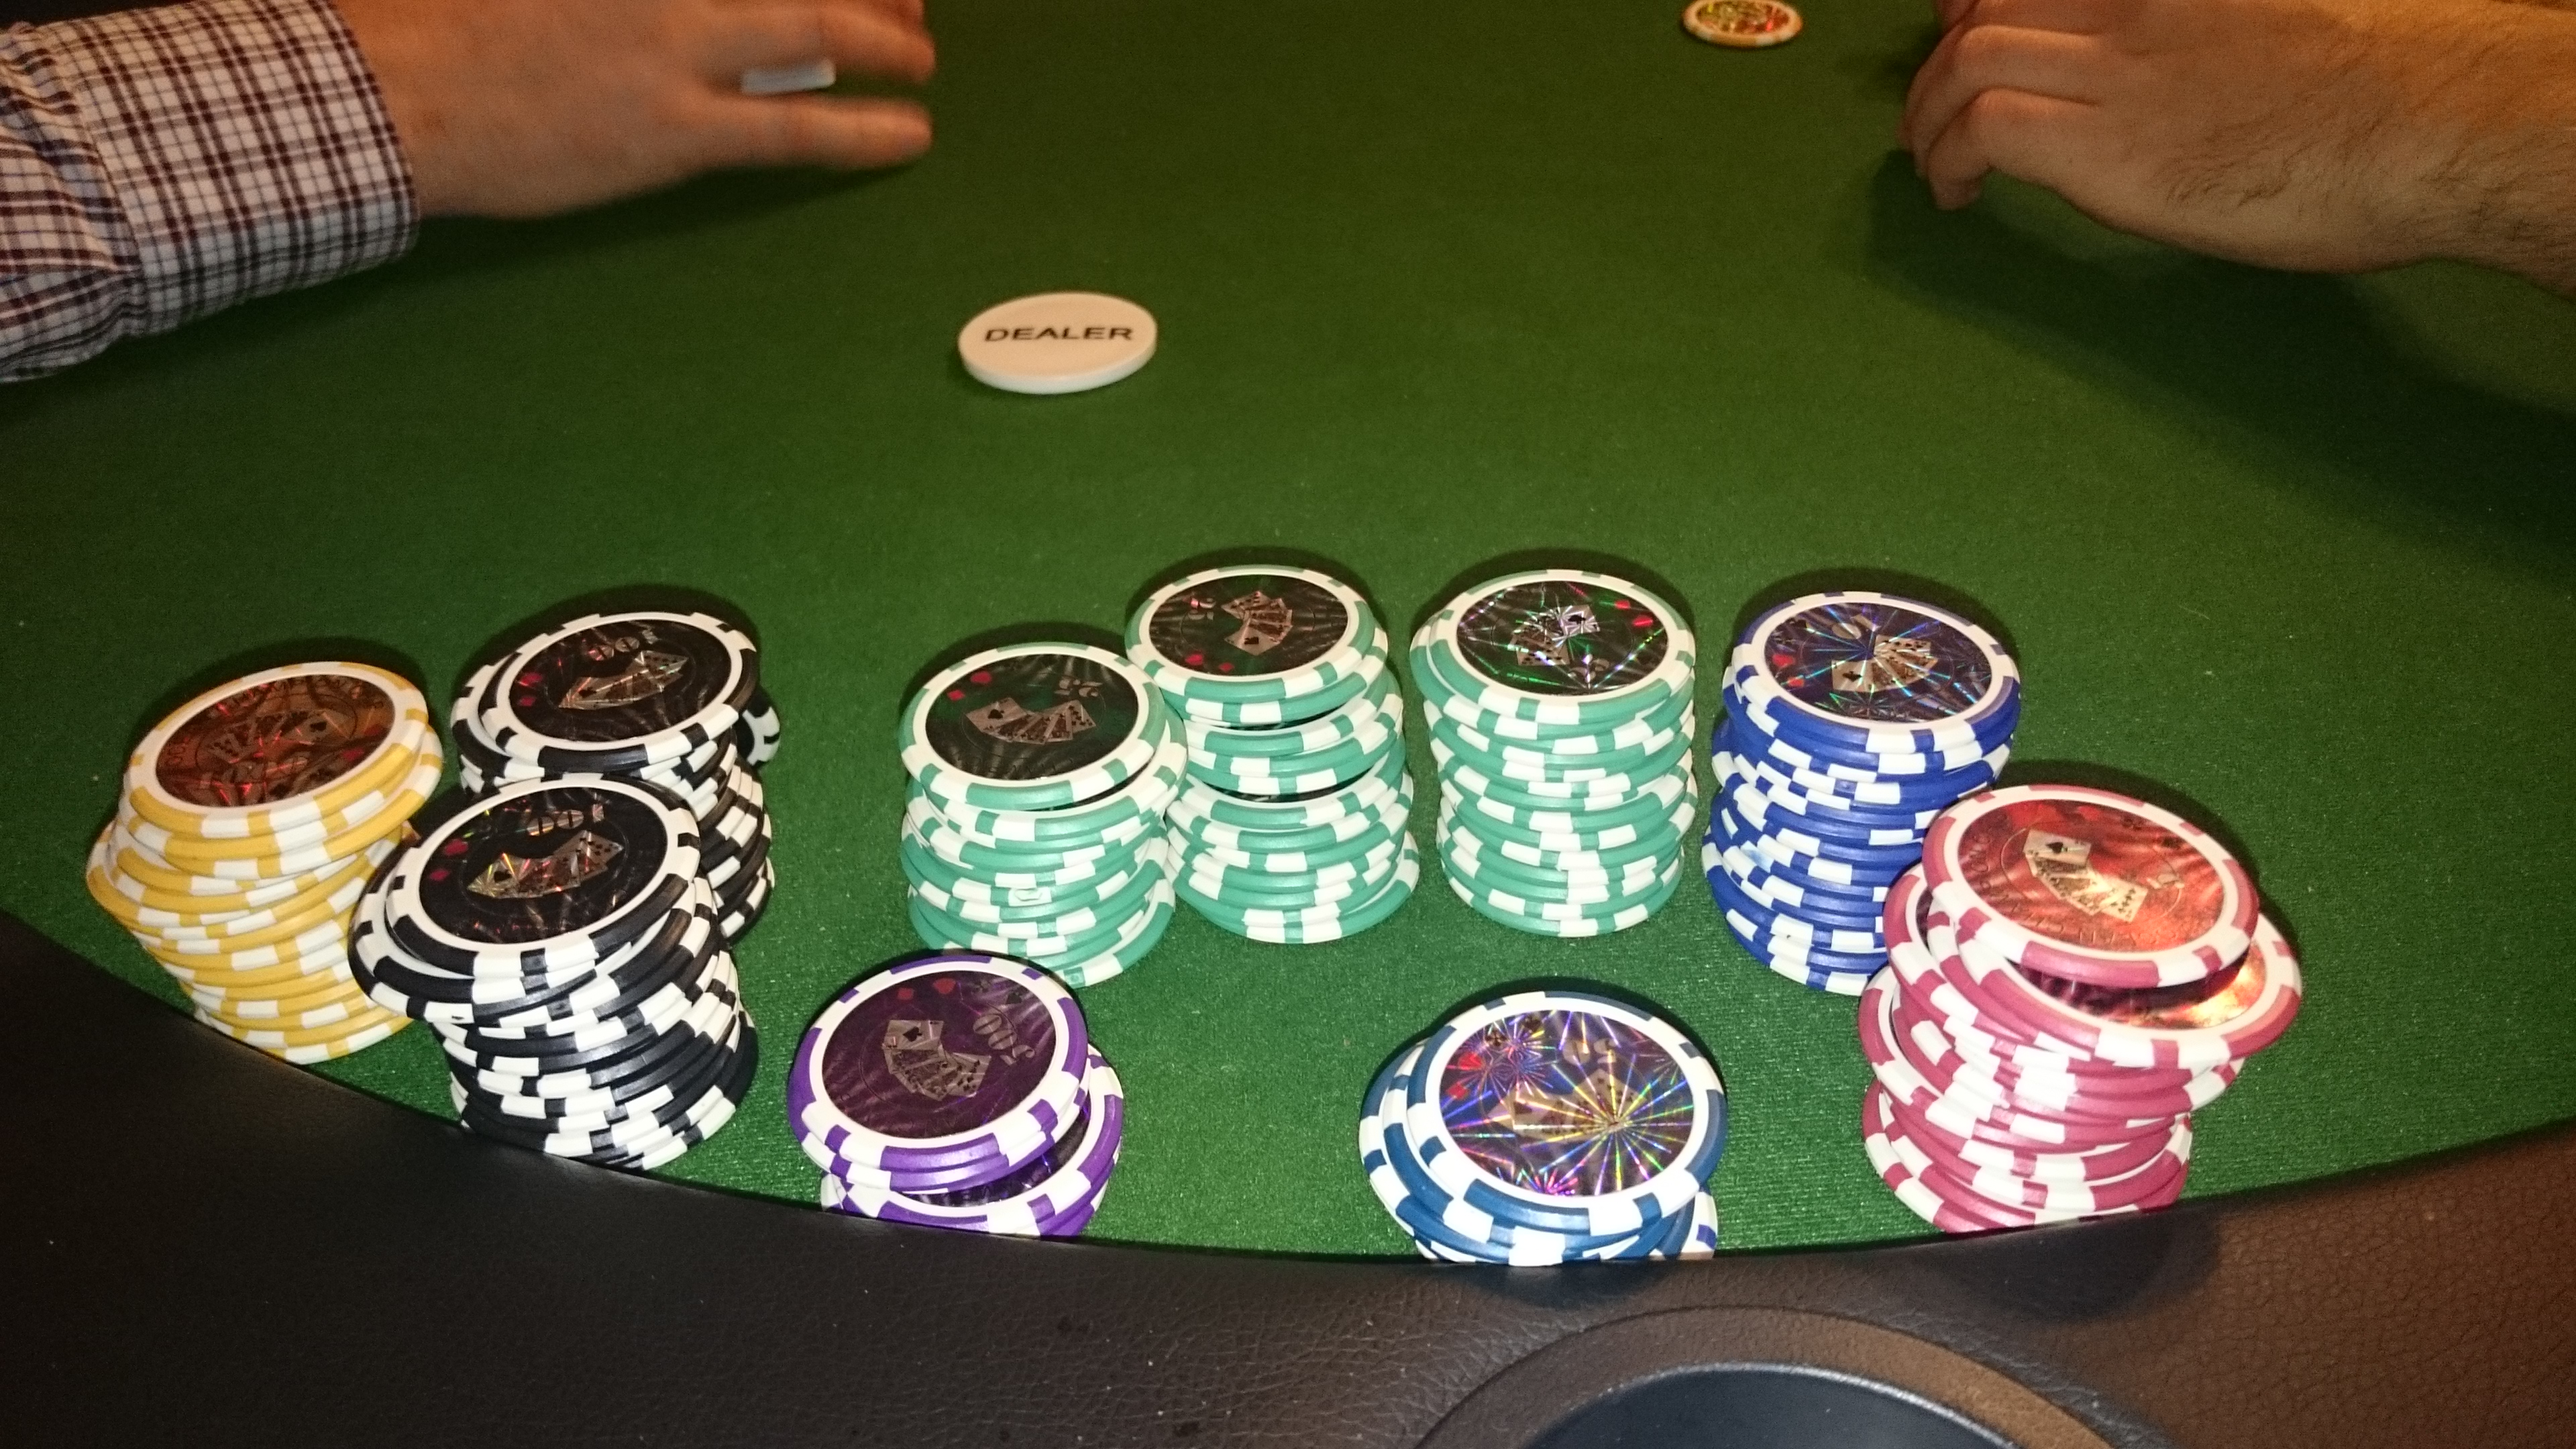 Die Pokerchips am Tisch mit Dealer Button.